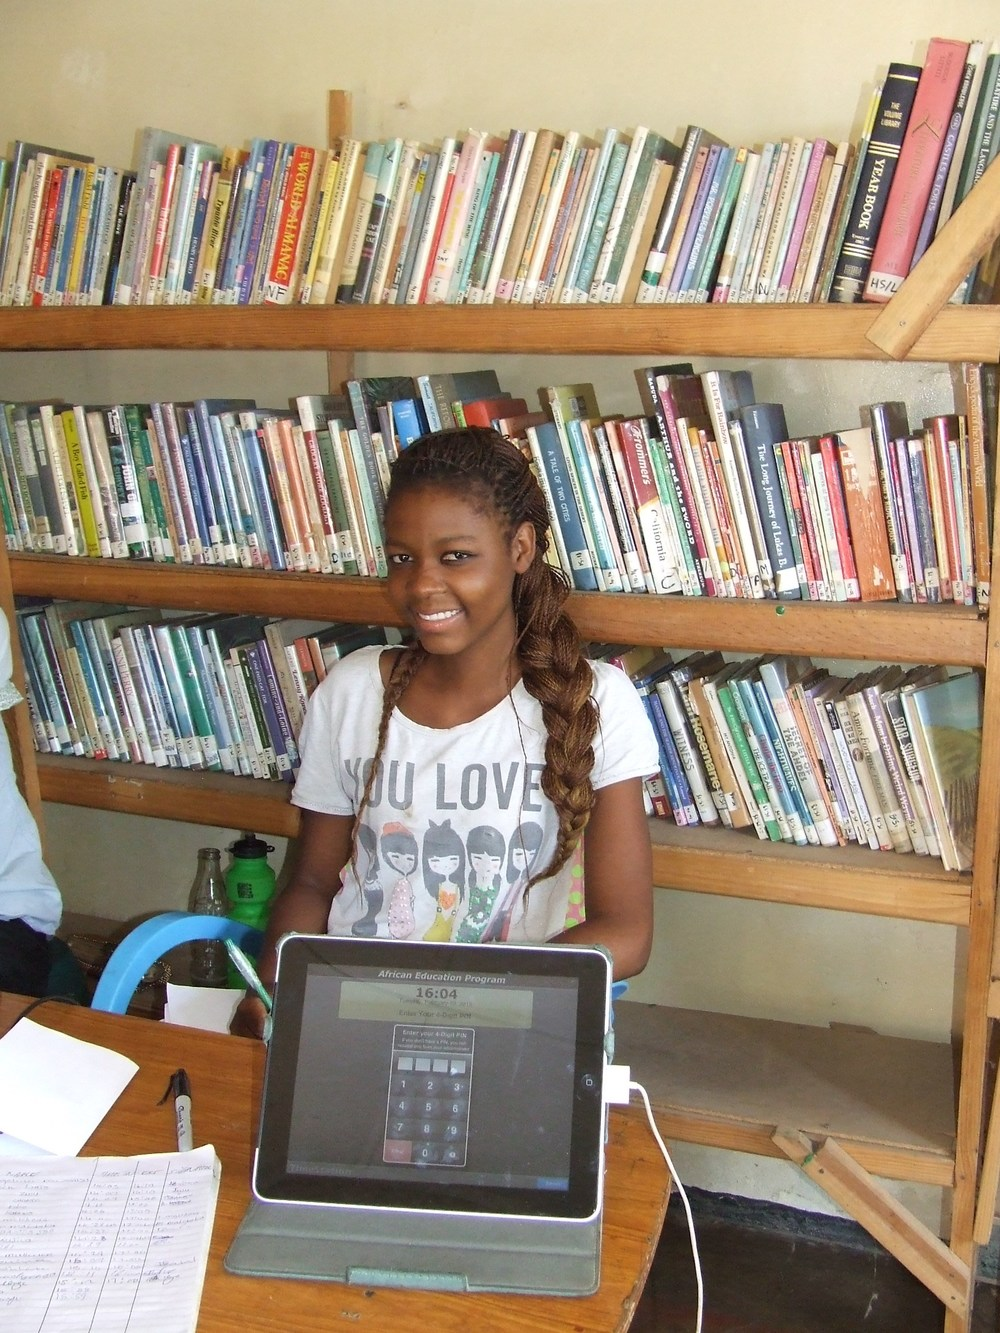 Students have access to over 3,000 books to help prepare for their exams or enjoy a good story.